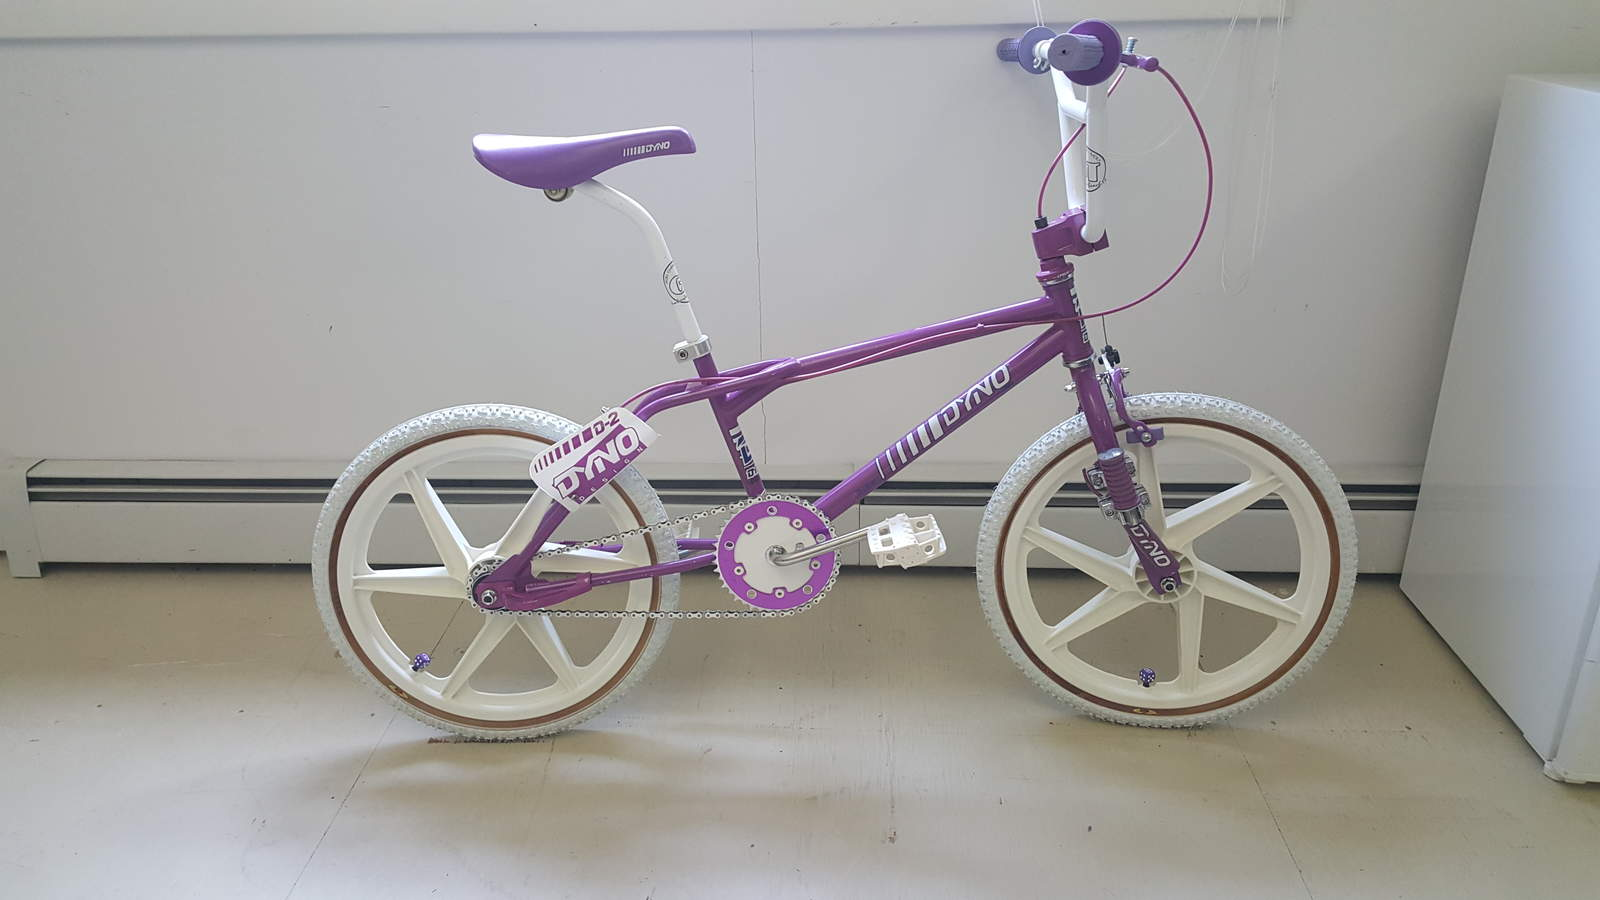 http://uploads.bmxmuseum.com/user-images/243997/20190524_1748495ce8670598.jpg